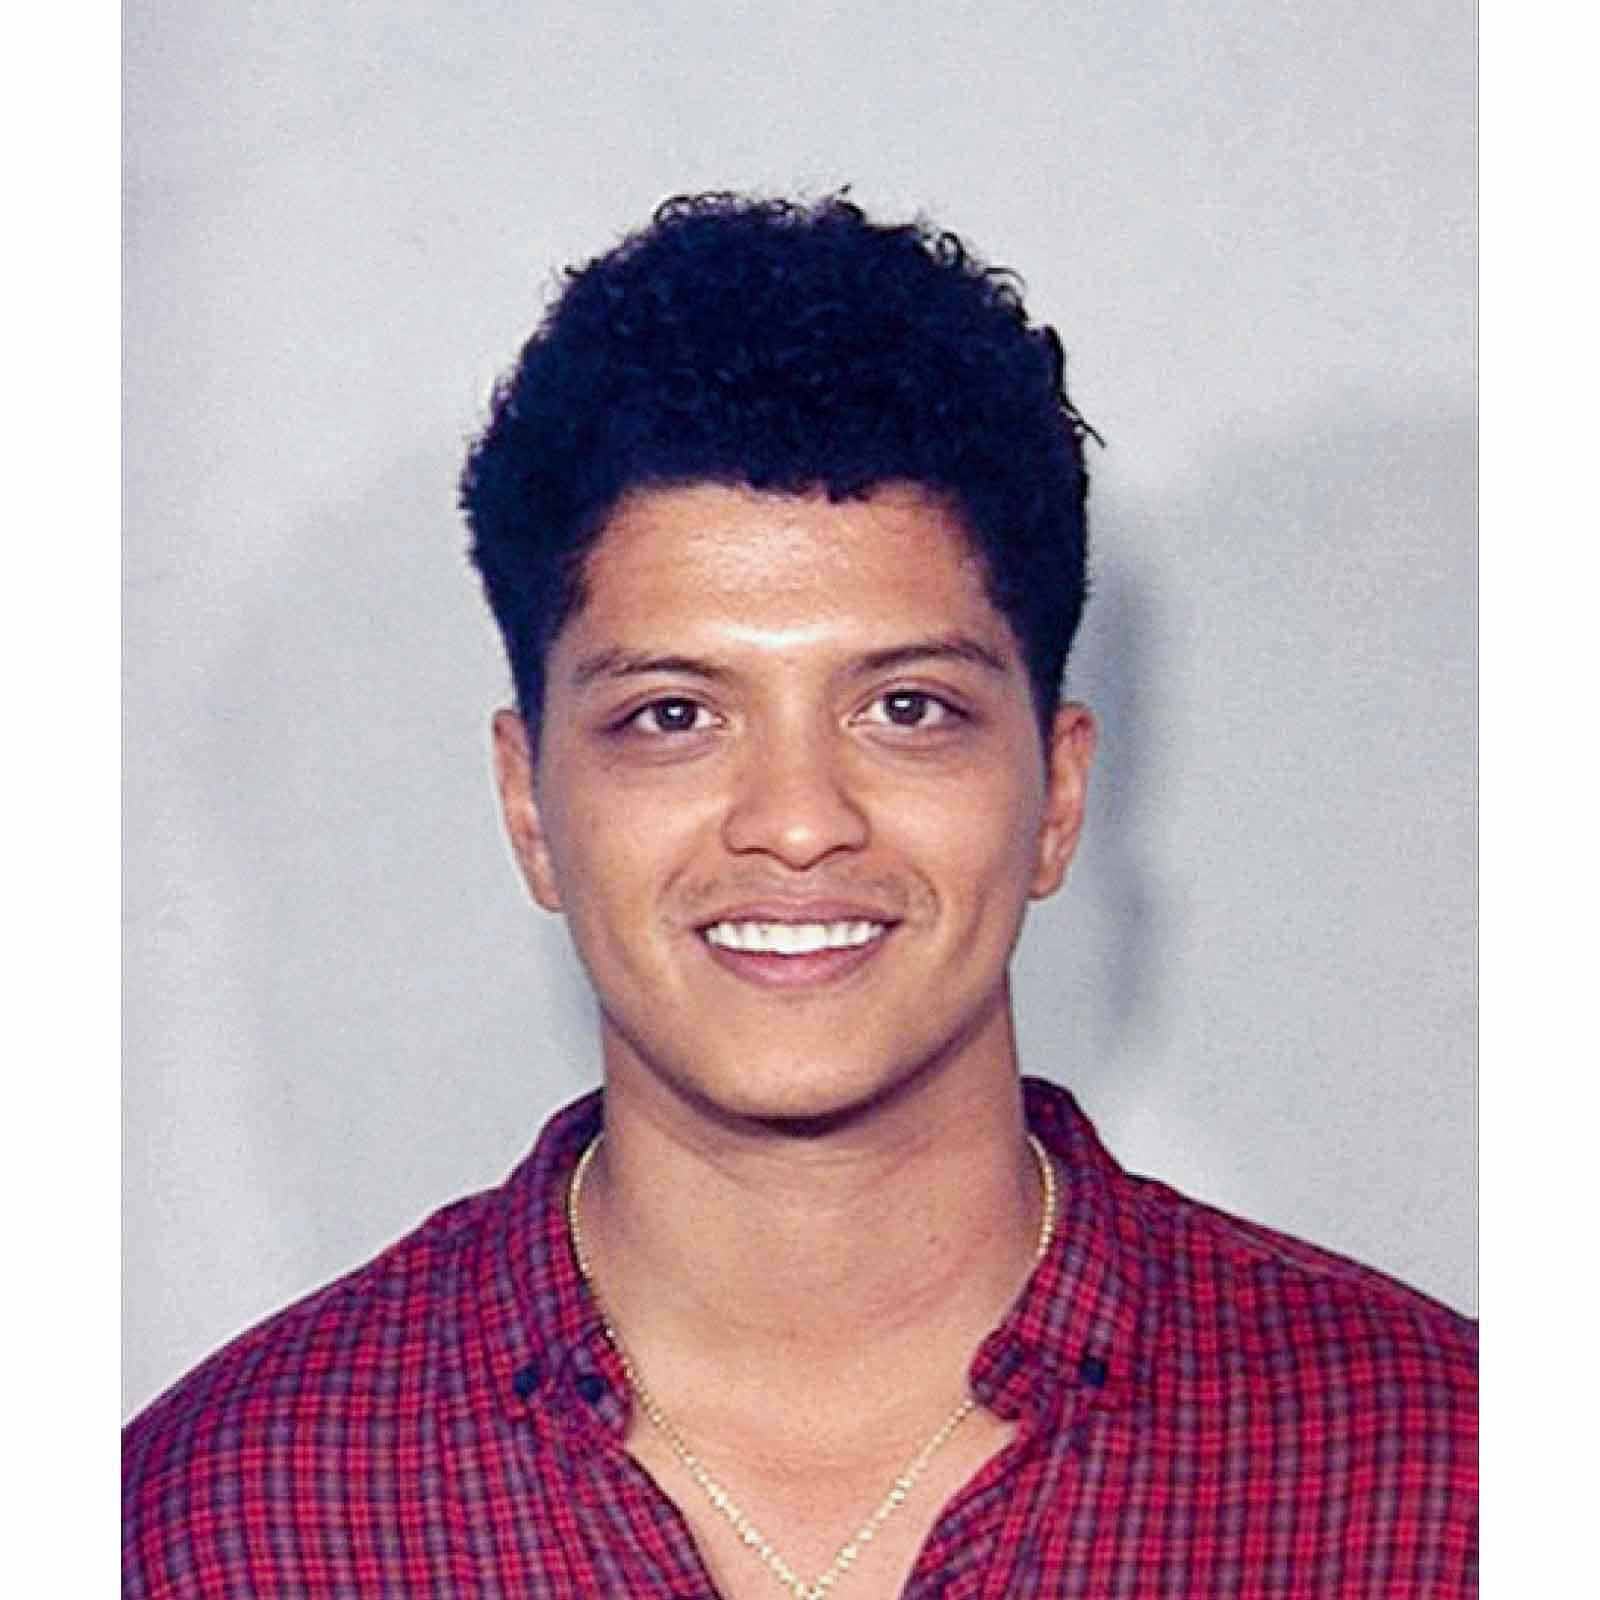 "Peter Gene Hernandez, aka ""Bruno Mars"", 2010   Singer Bruno Mars was arrested in 2010 in a bathroom of the Hard Rock Hotel & Casino in Las Vegas, Nevada for  felony cocaine possession . Mars pled guilty to cocaine possession (2.6 grams). Under his plea deal, charges were eventually dismissed after he paid a $2,000 fine and completed 200 hours of community service and eight hours of drug counseling."